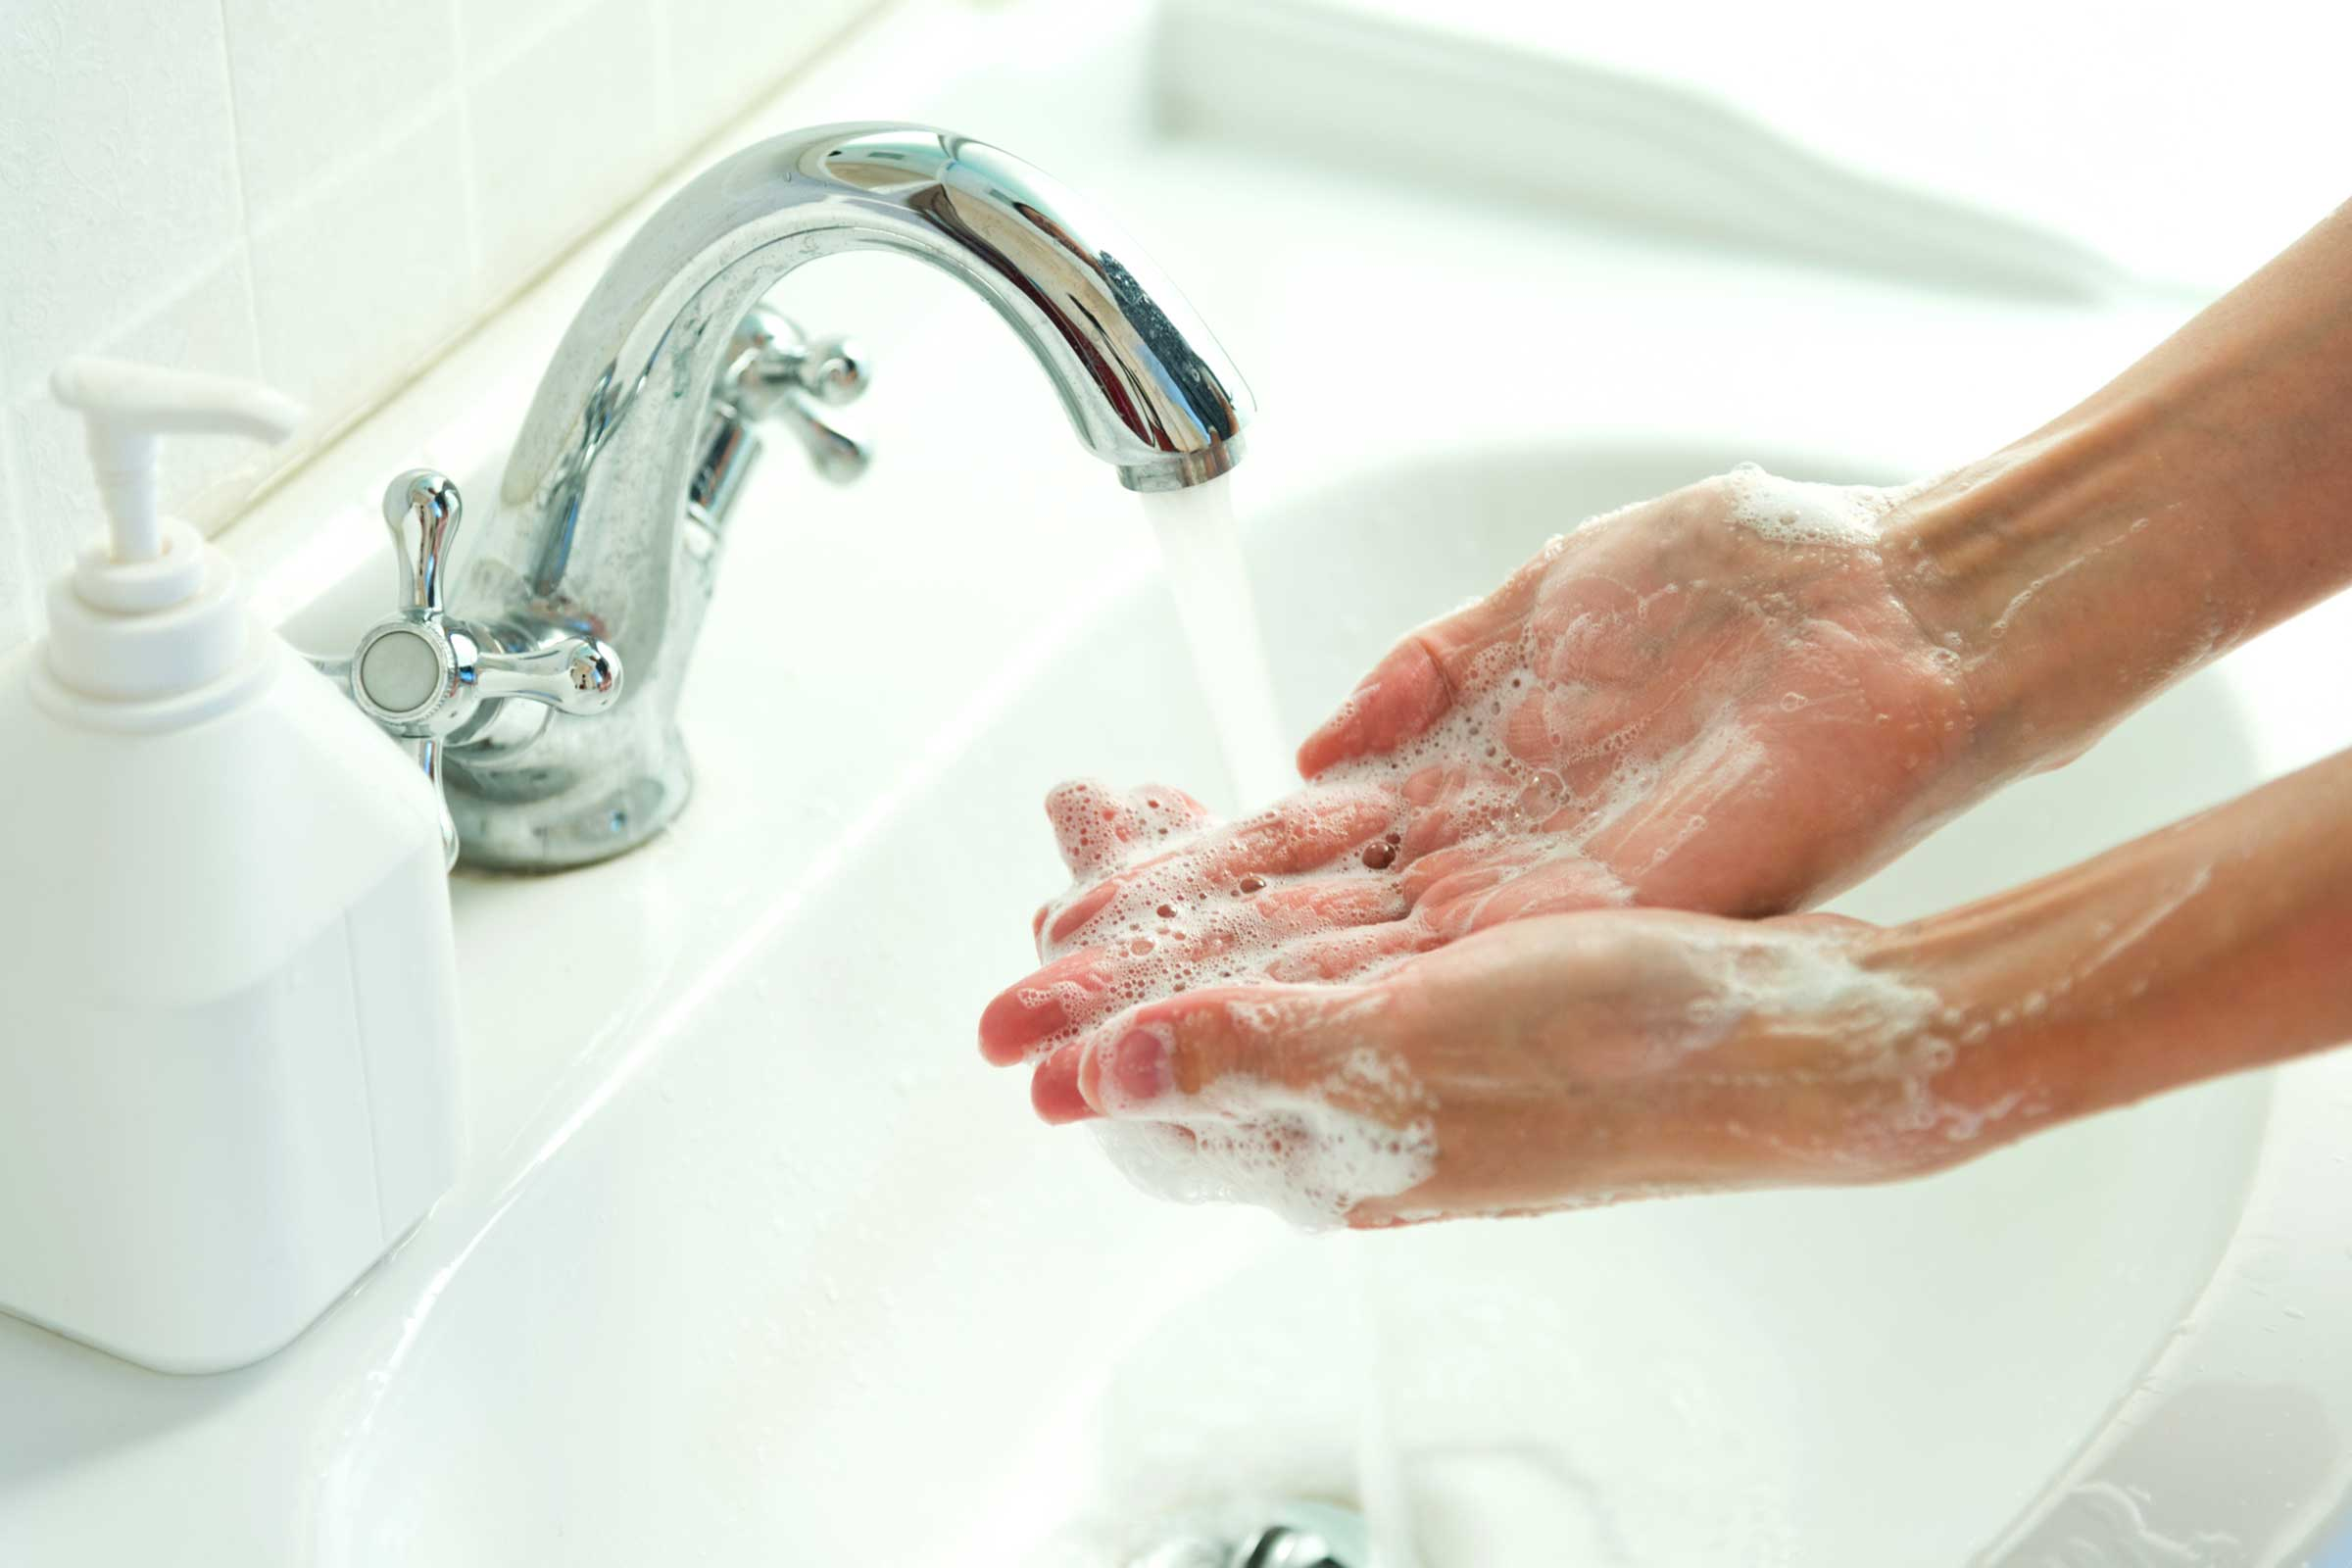 Are You and Your Children Washing Your Hands Properly?